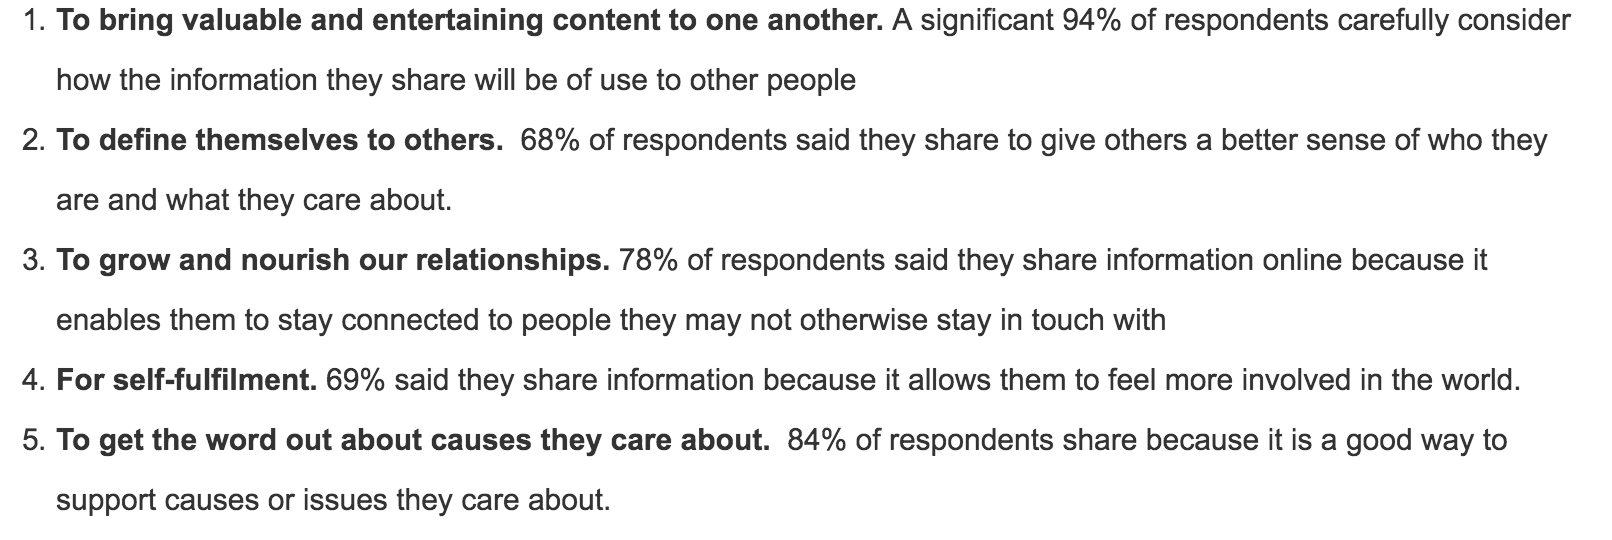 Why Do People Share Content?